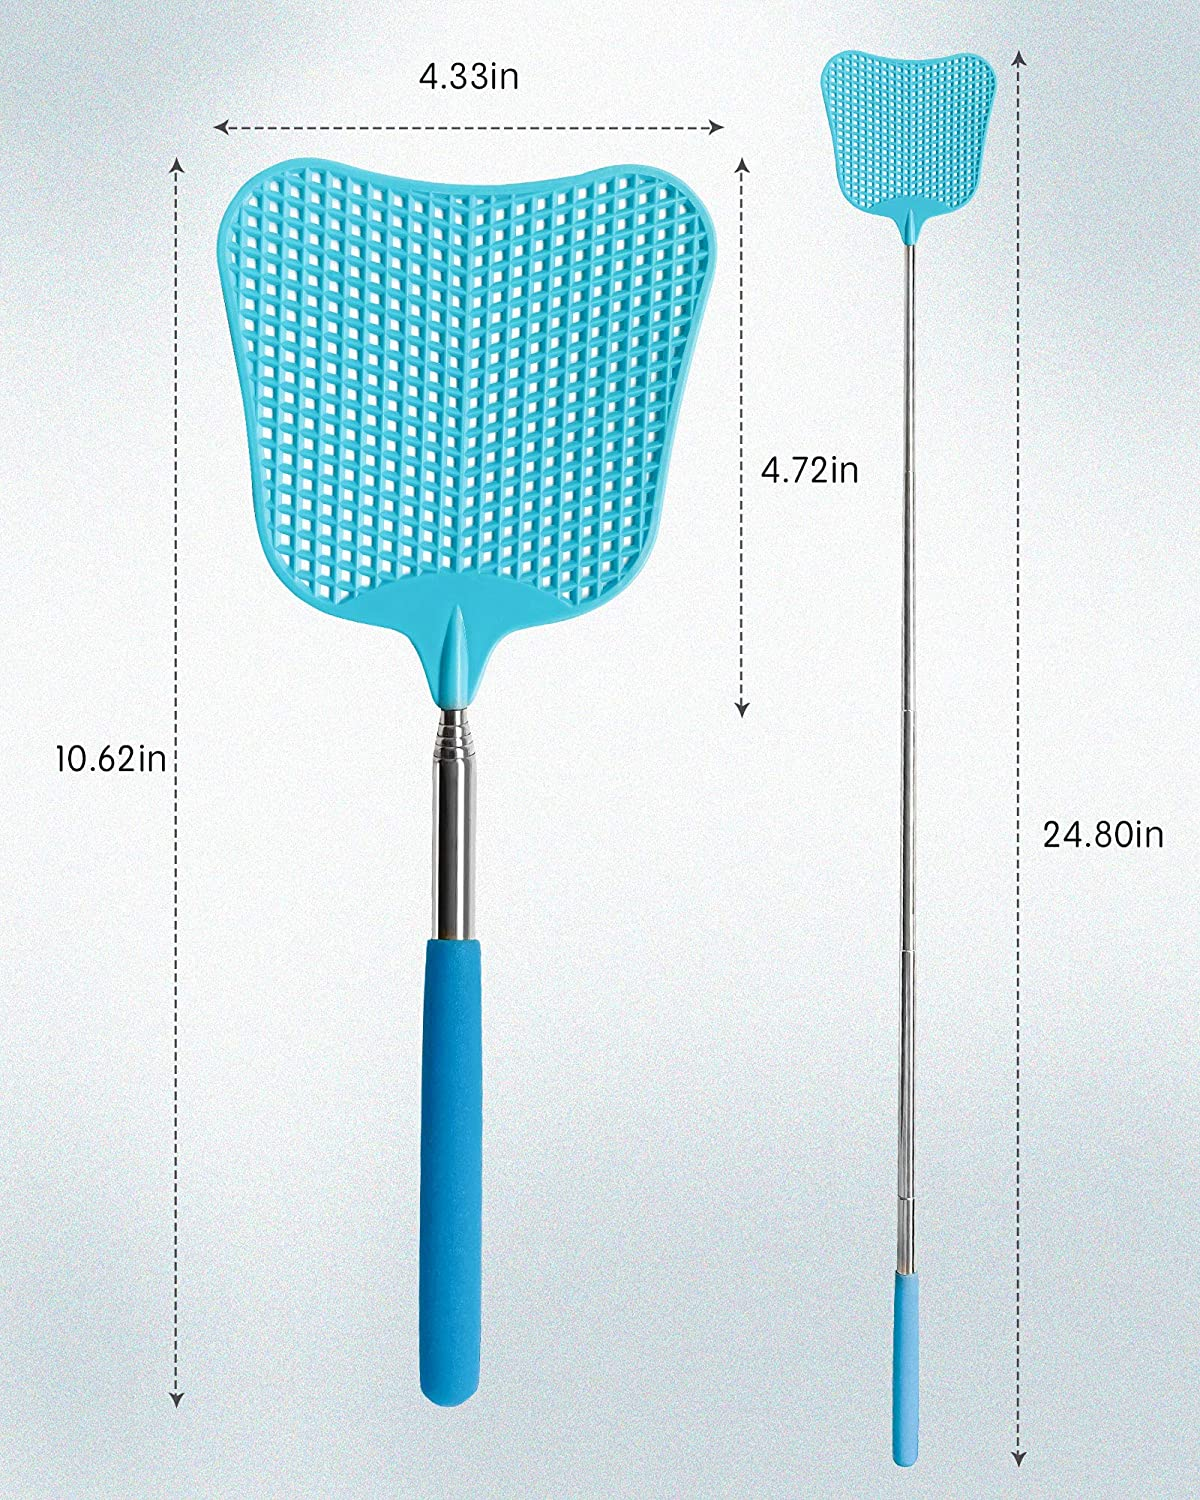 Office Anual Swat Pest Control with Strong Flexible Durable Telescopic Handle Telescopic Flyswatter with Stainless Steel Handle for Indoor Classroom Outdoor CUNCUI Large Extendable Fly Swatter